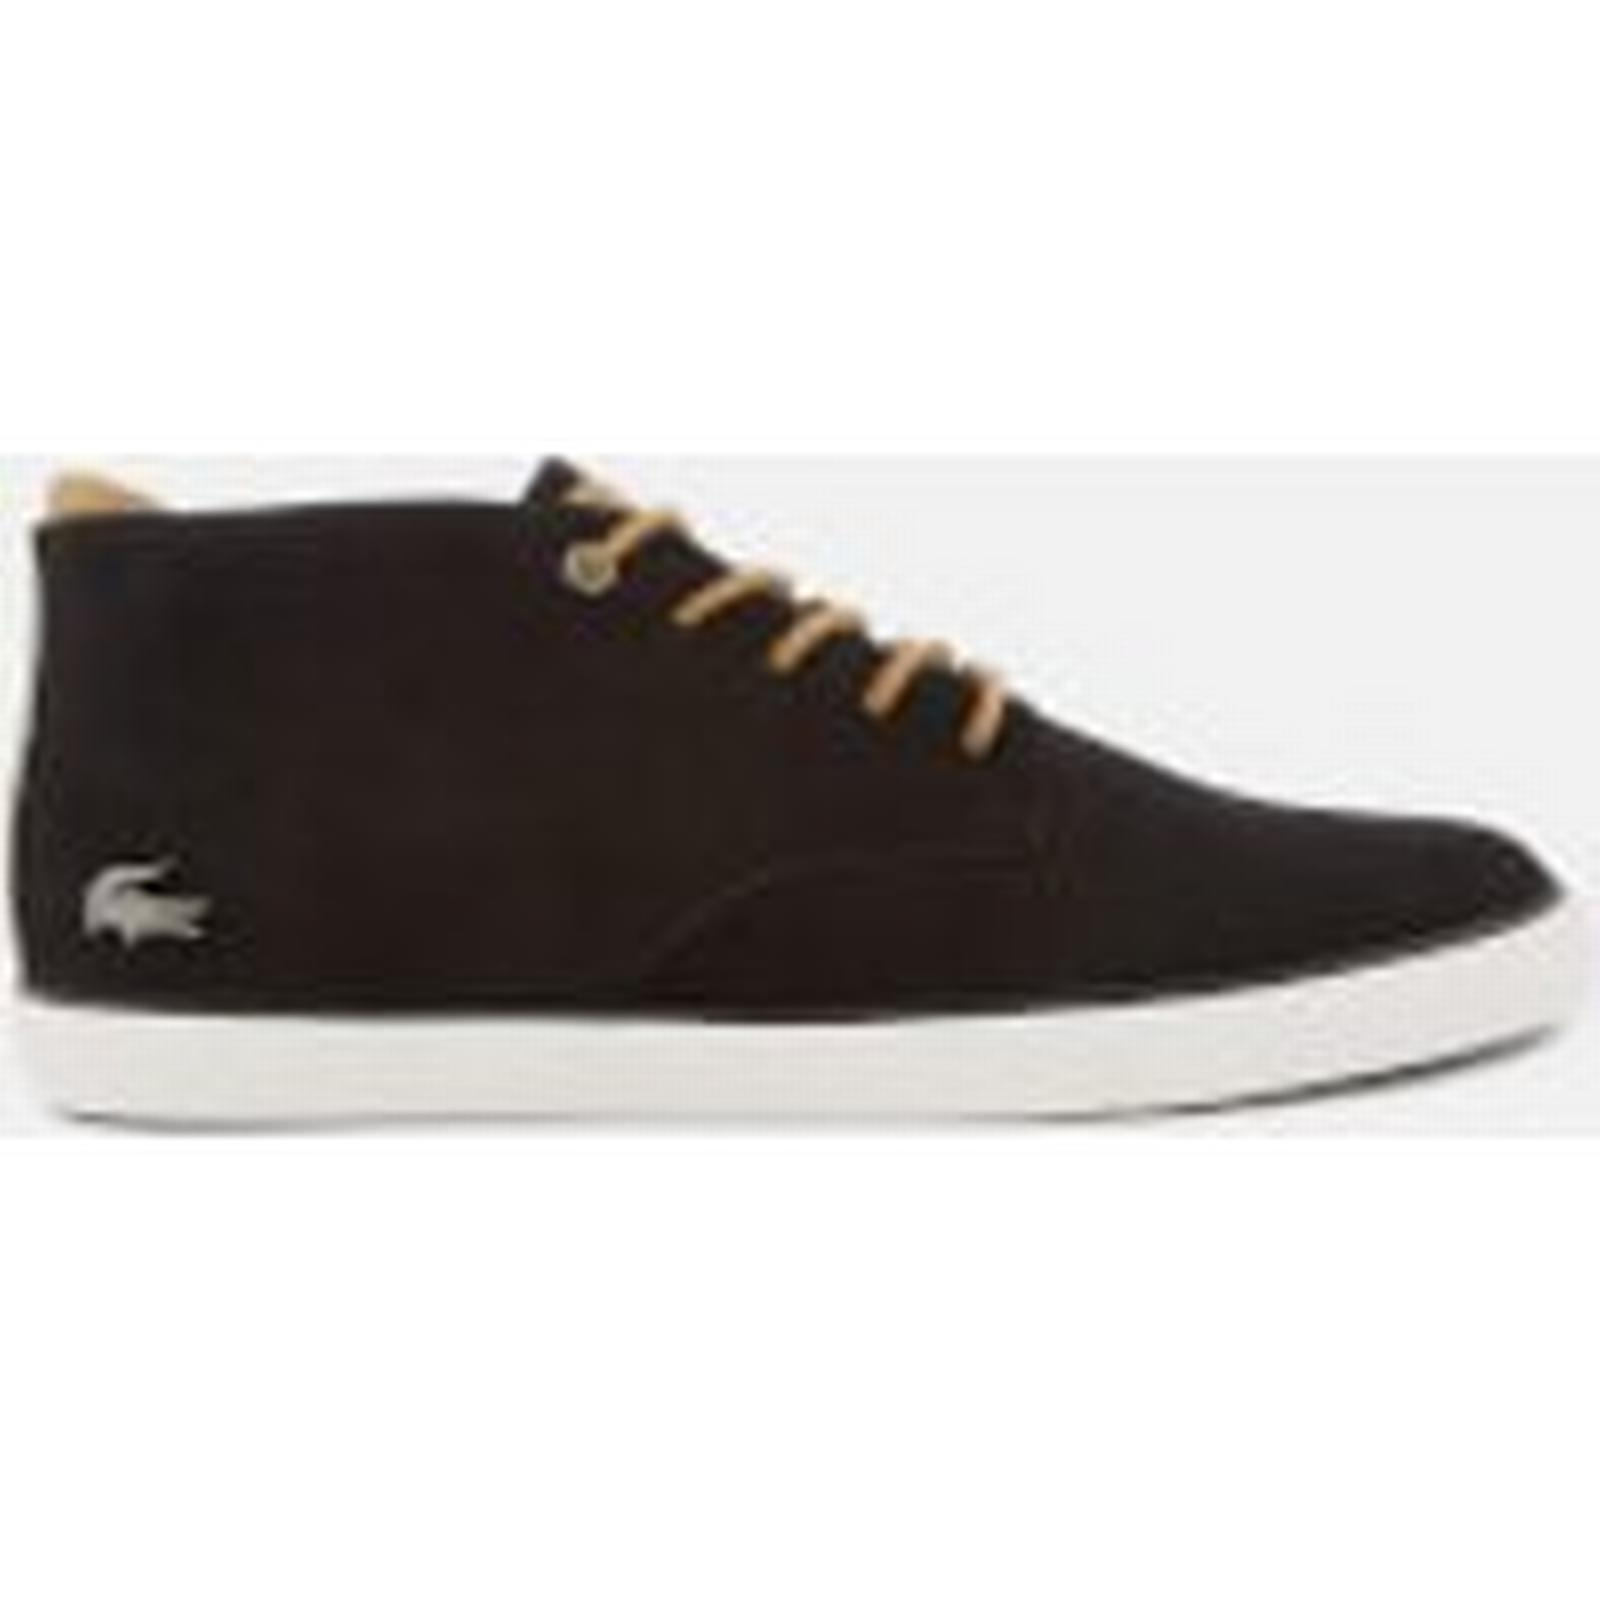 Lacoste Nubuck Men's Esparre 118 1 Nubuck Lacoste Chukka Boots - Black/Light Brown 29ebe5